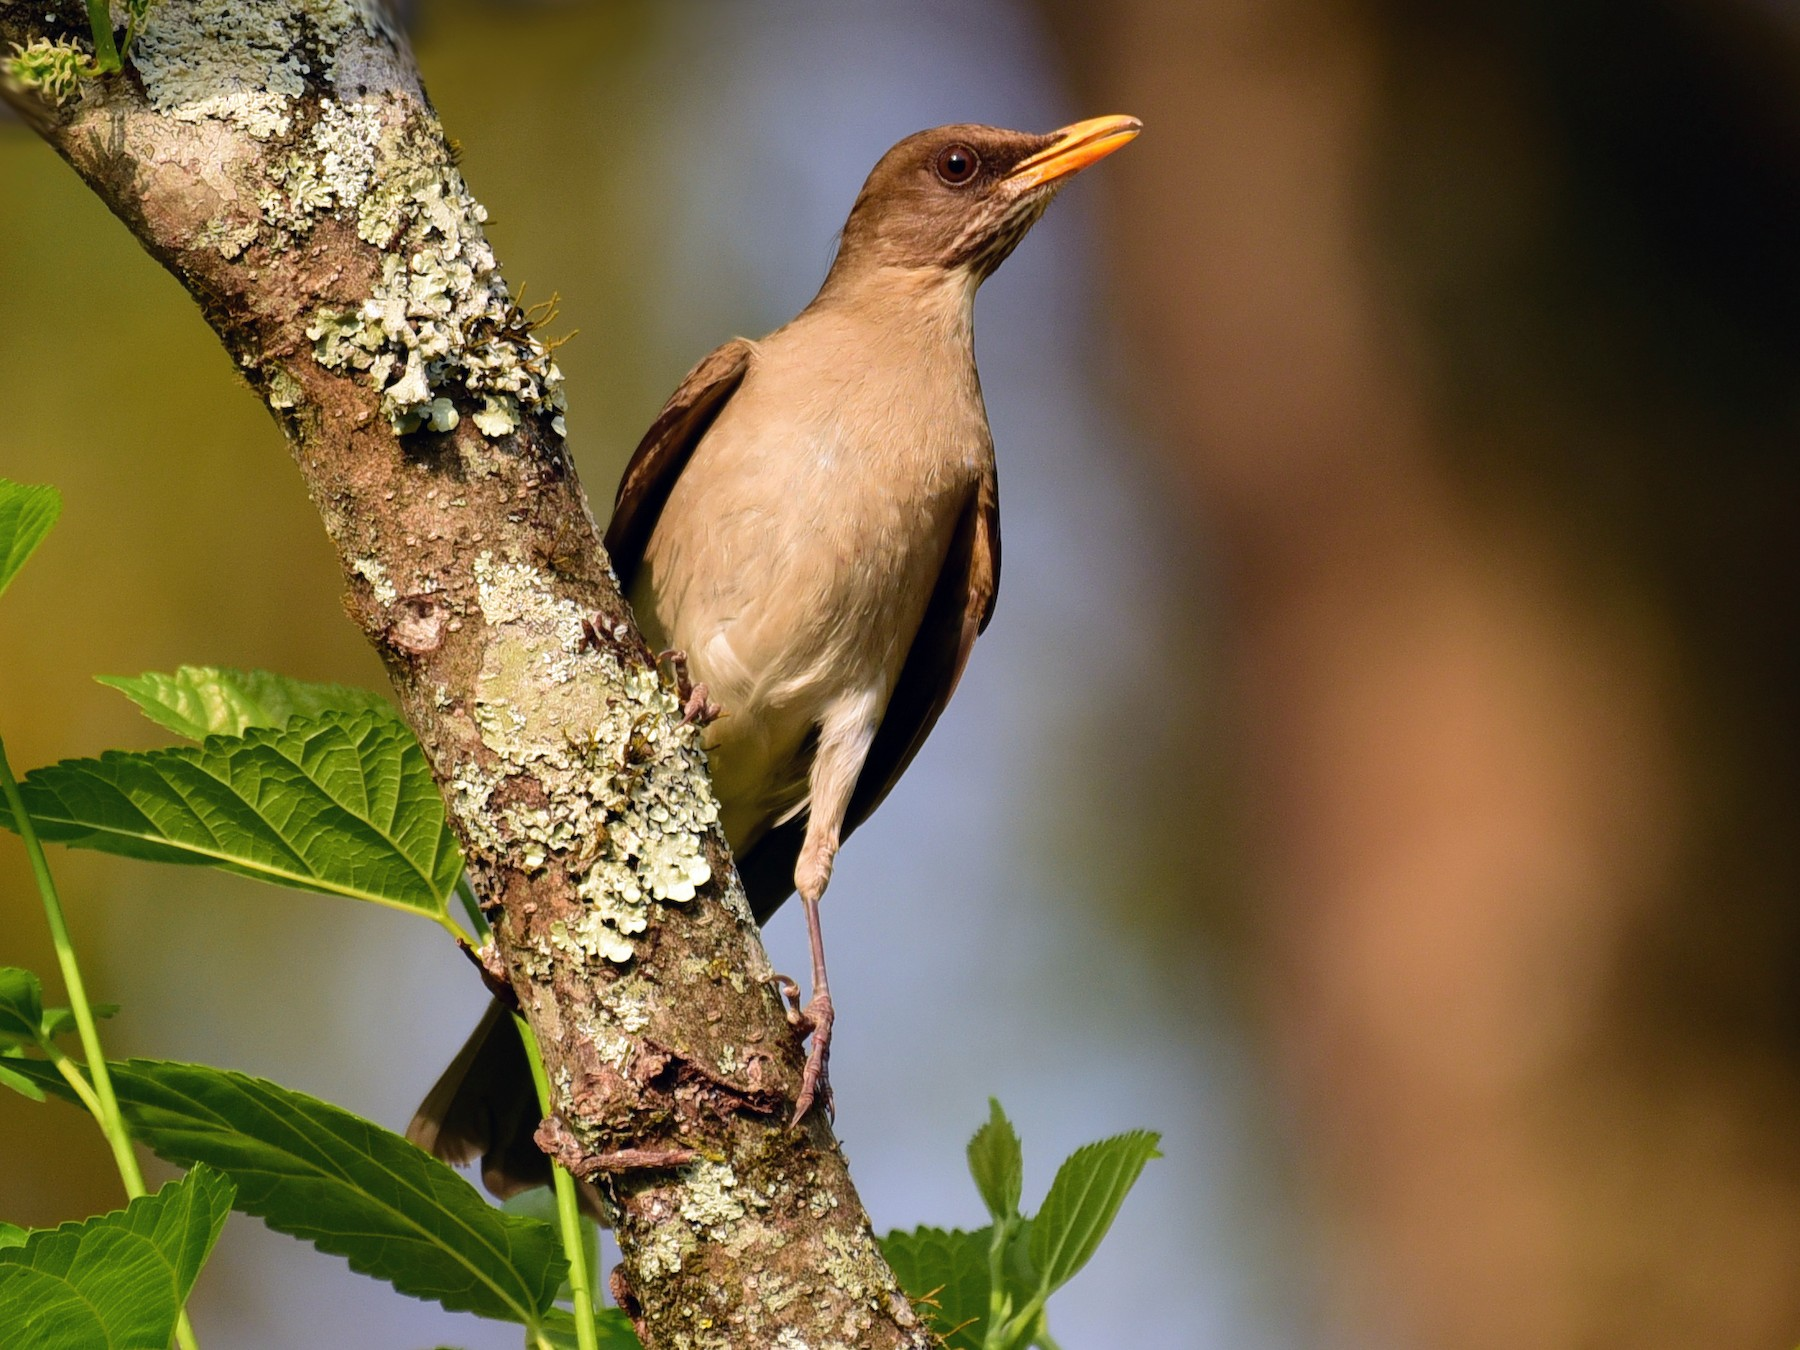 Creamy-bellied Thrush - Luiz Moschini